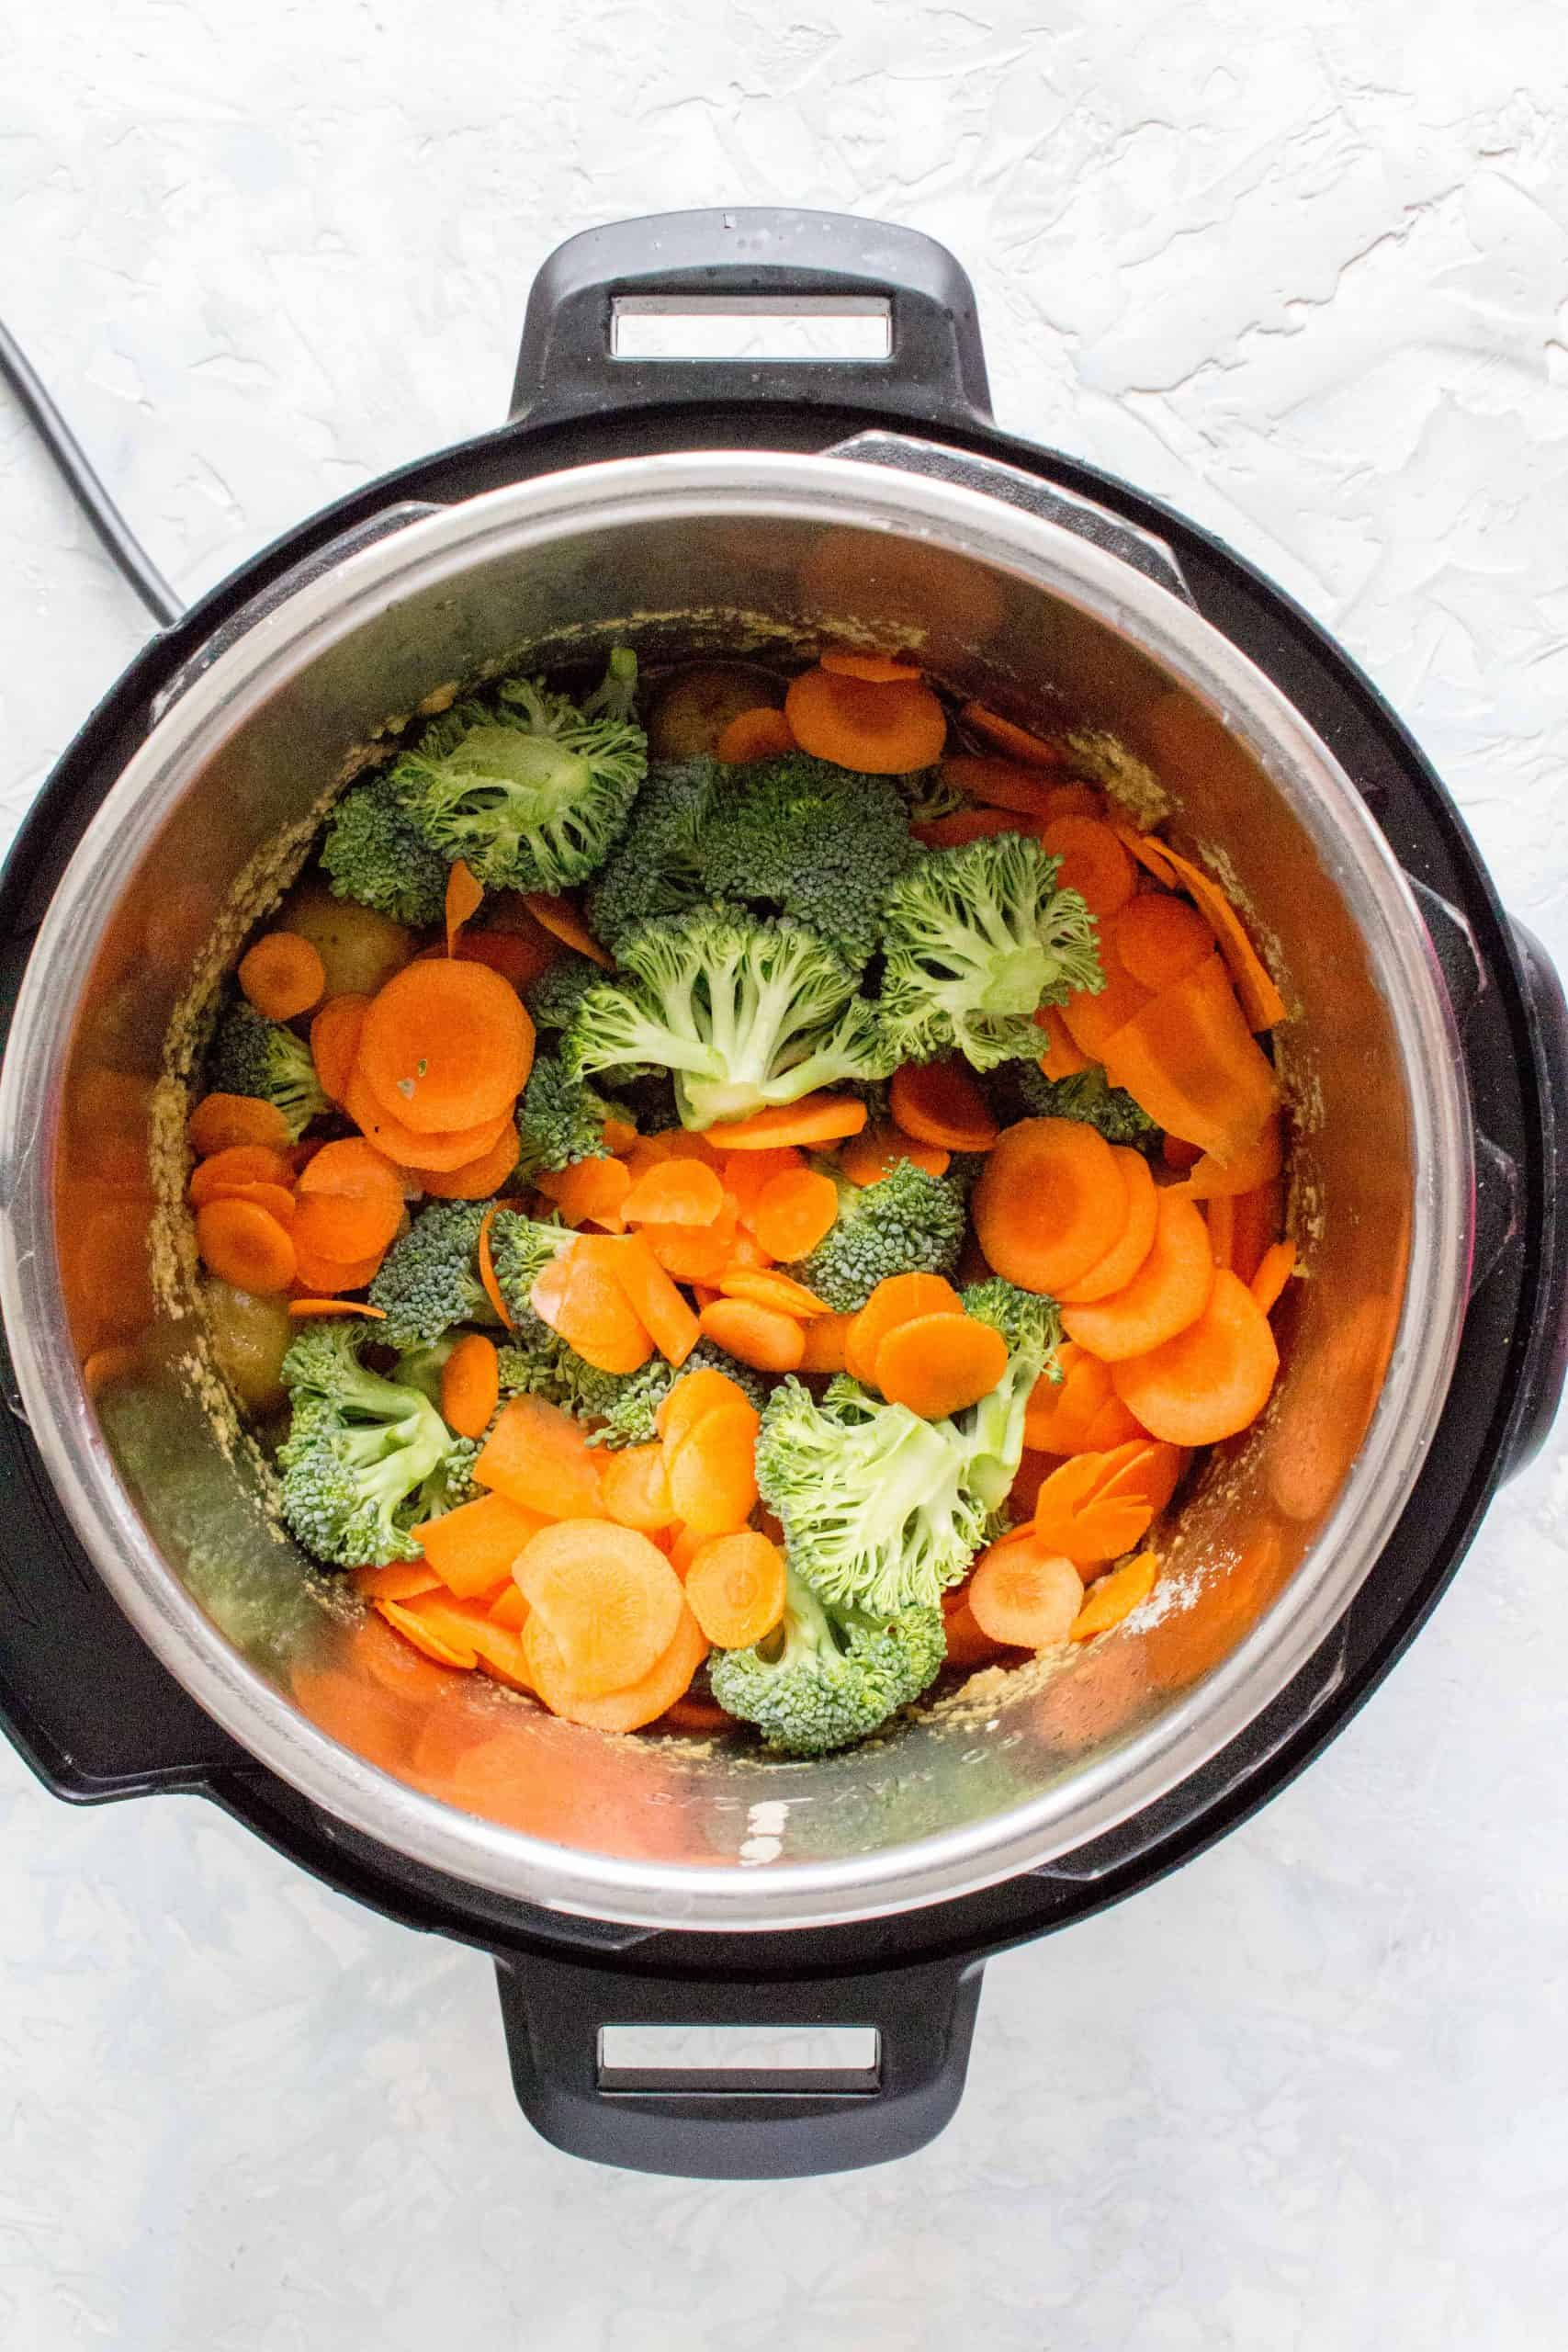 broccoli and carrots in the instant pot